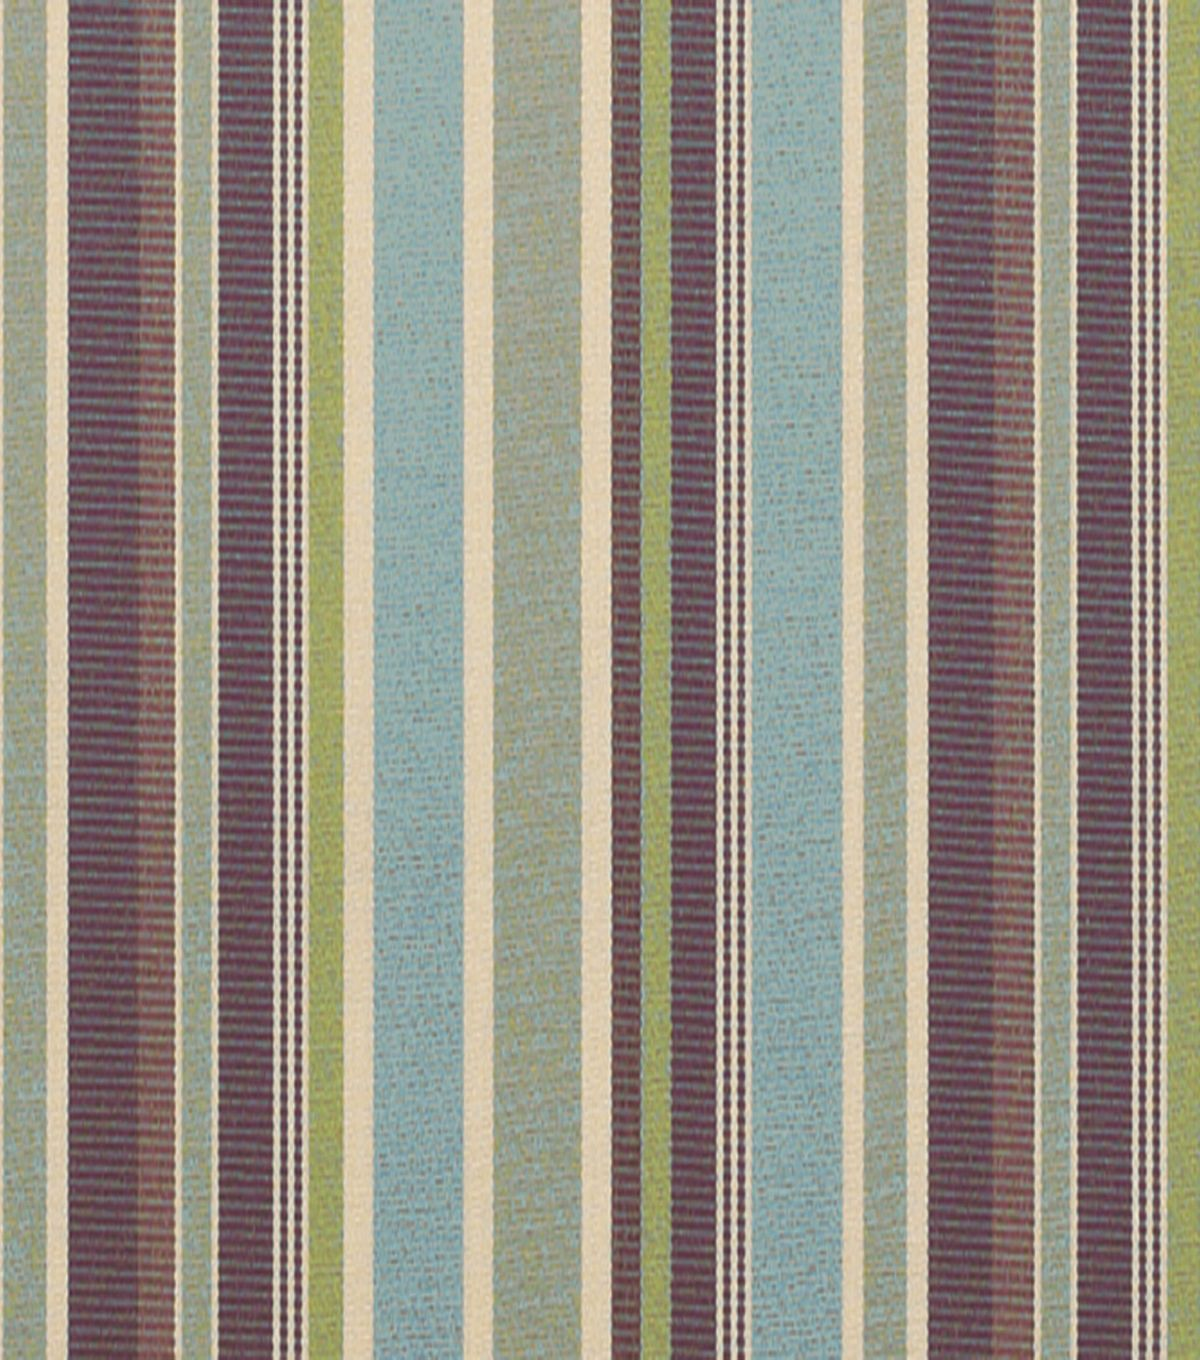 Sunbrella Outdoor Stripe Fabric 54